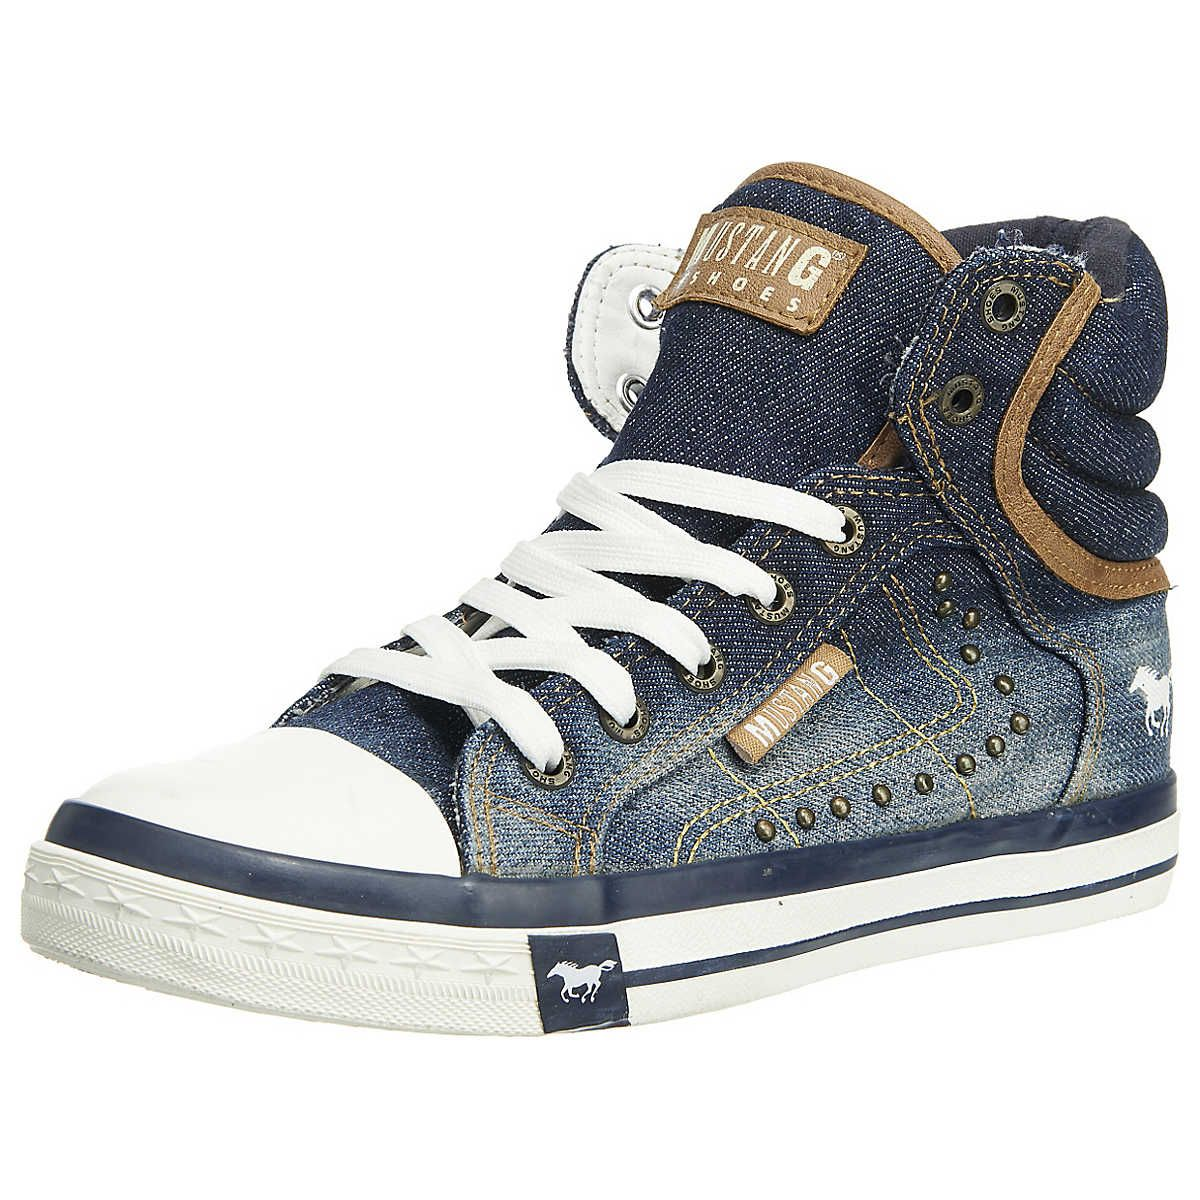 super popular 227c4 2440b MUSTANG Sneakers | Handbags and Shoes | Sneakers, Fashion ...